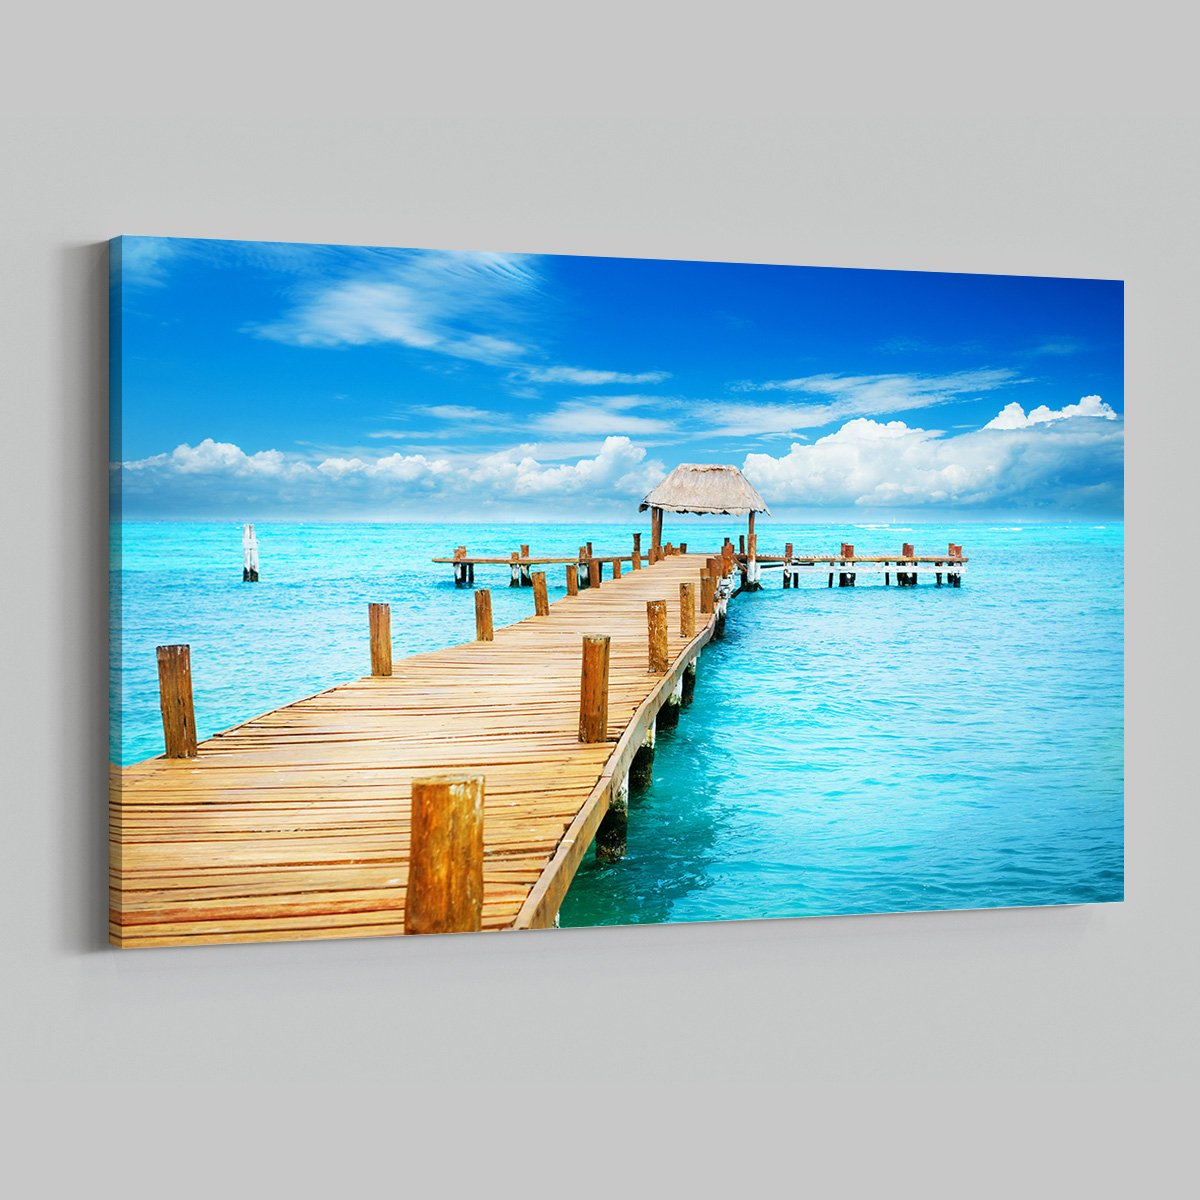 Tropical Beach Dock Ocean View Time Lapse Modern Art Living Room 010